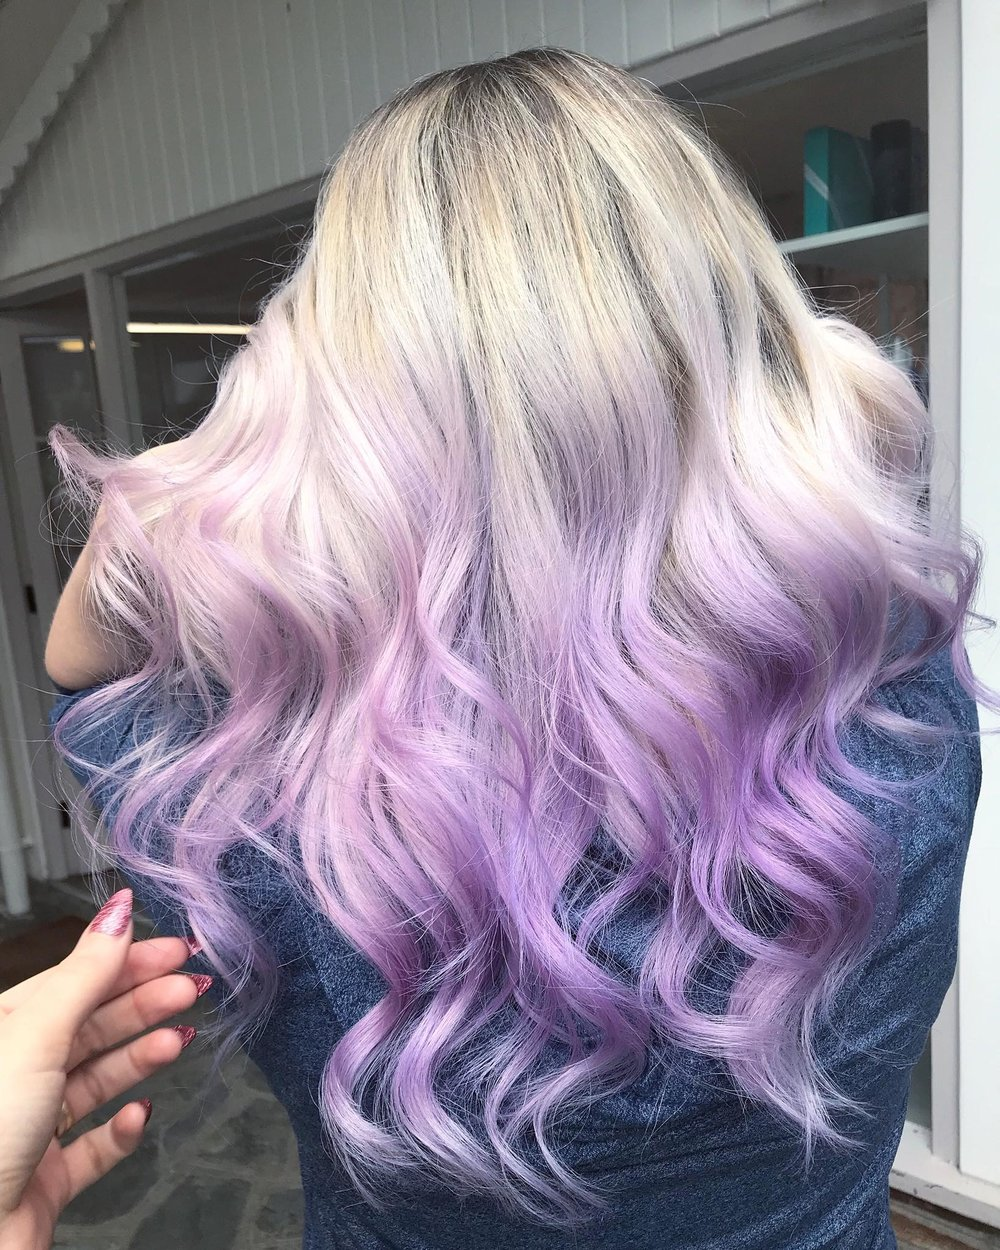 Hannah Woodgates Hair Design Long curls purple lilac blonde | Image courtesy of Hannah Woodgates